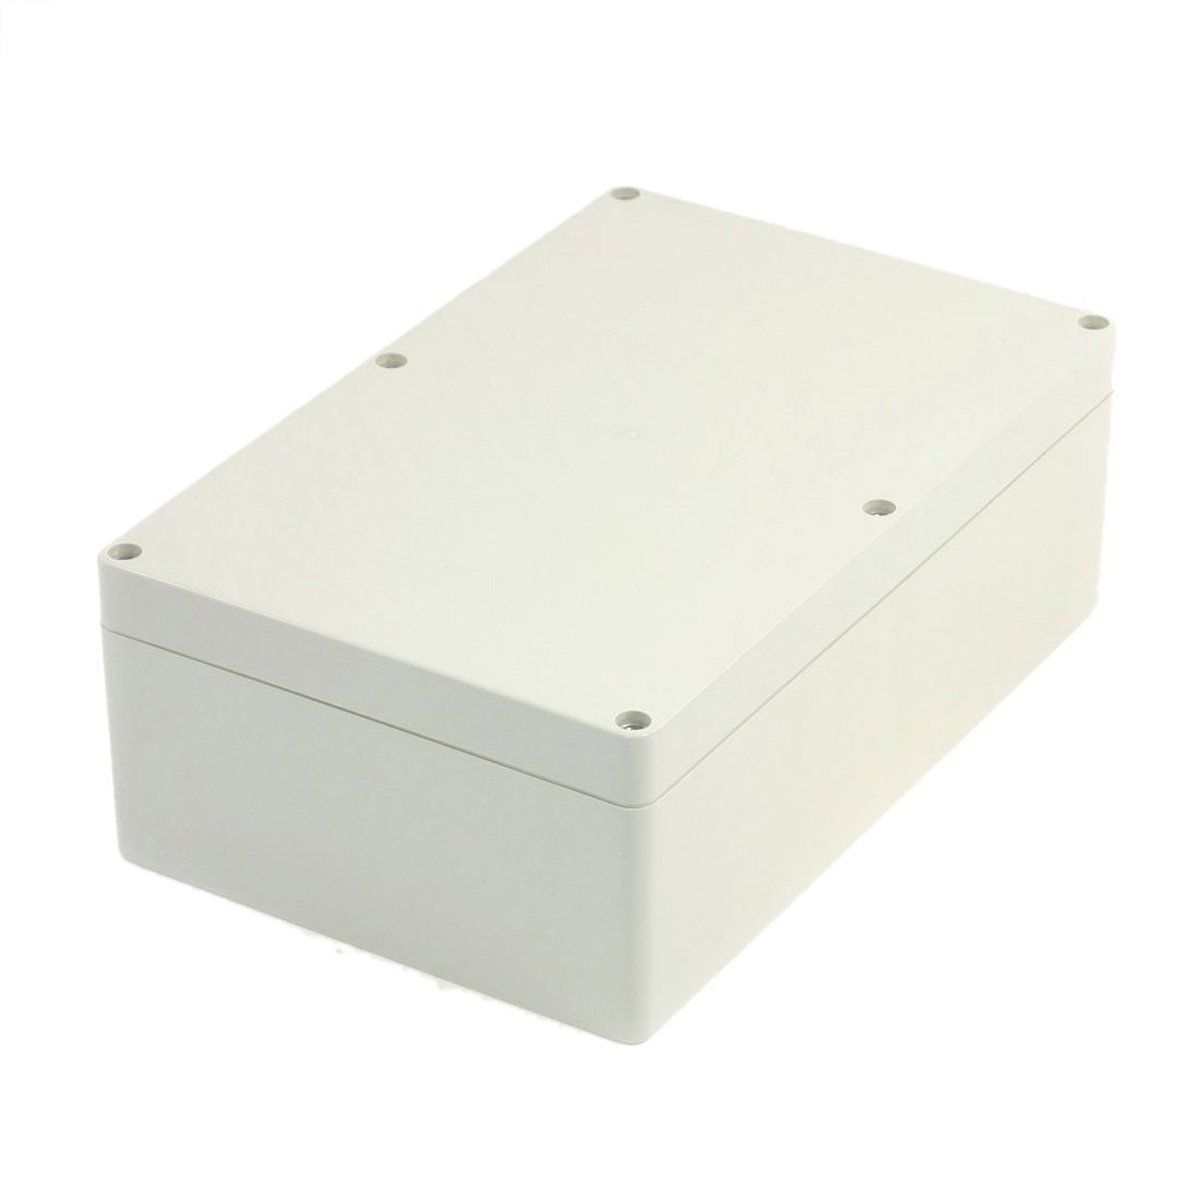 230mmx150mmx85mm Junction Box Enclosure Project Case Electric Power IP65 Waterproof Plastic